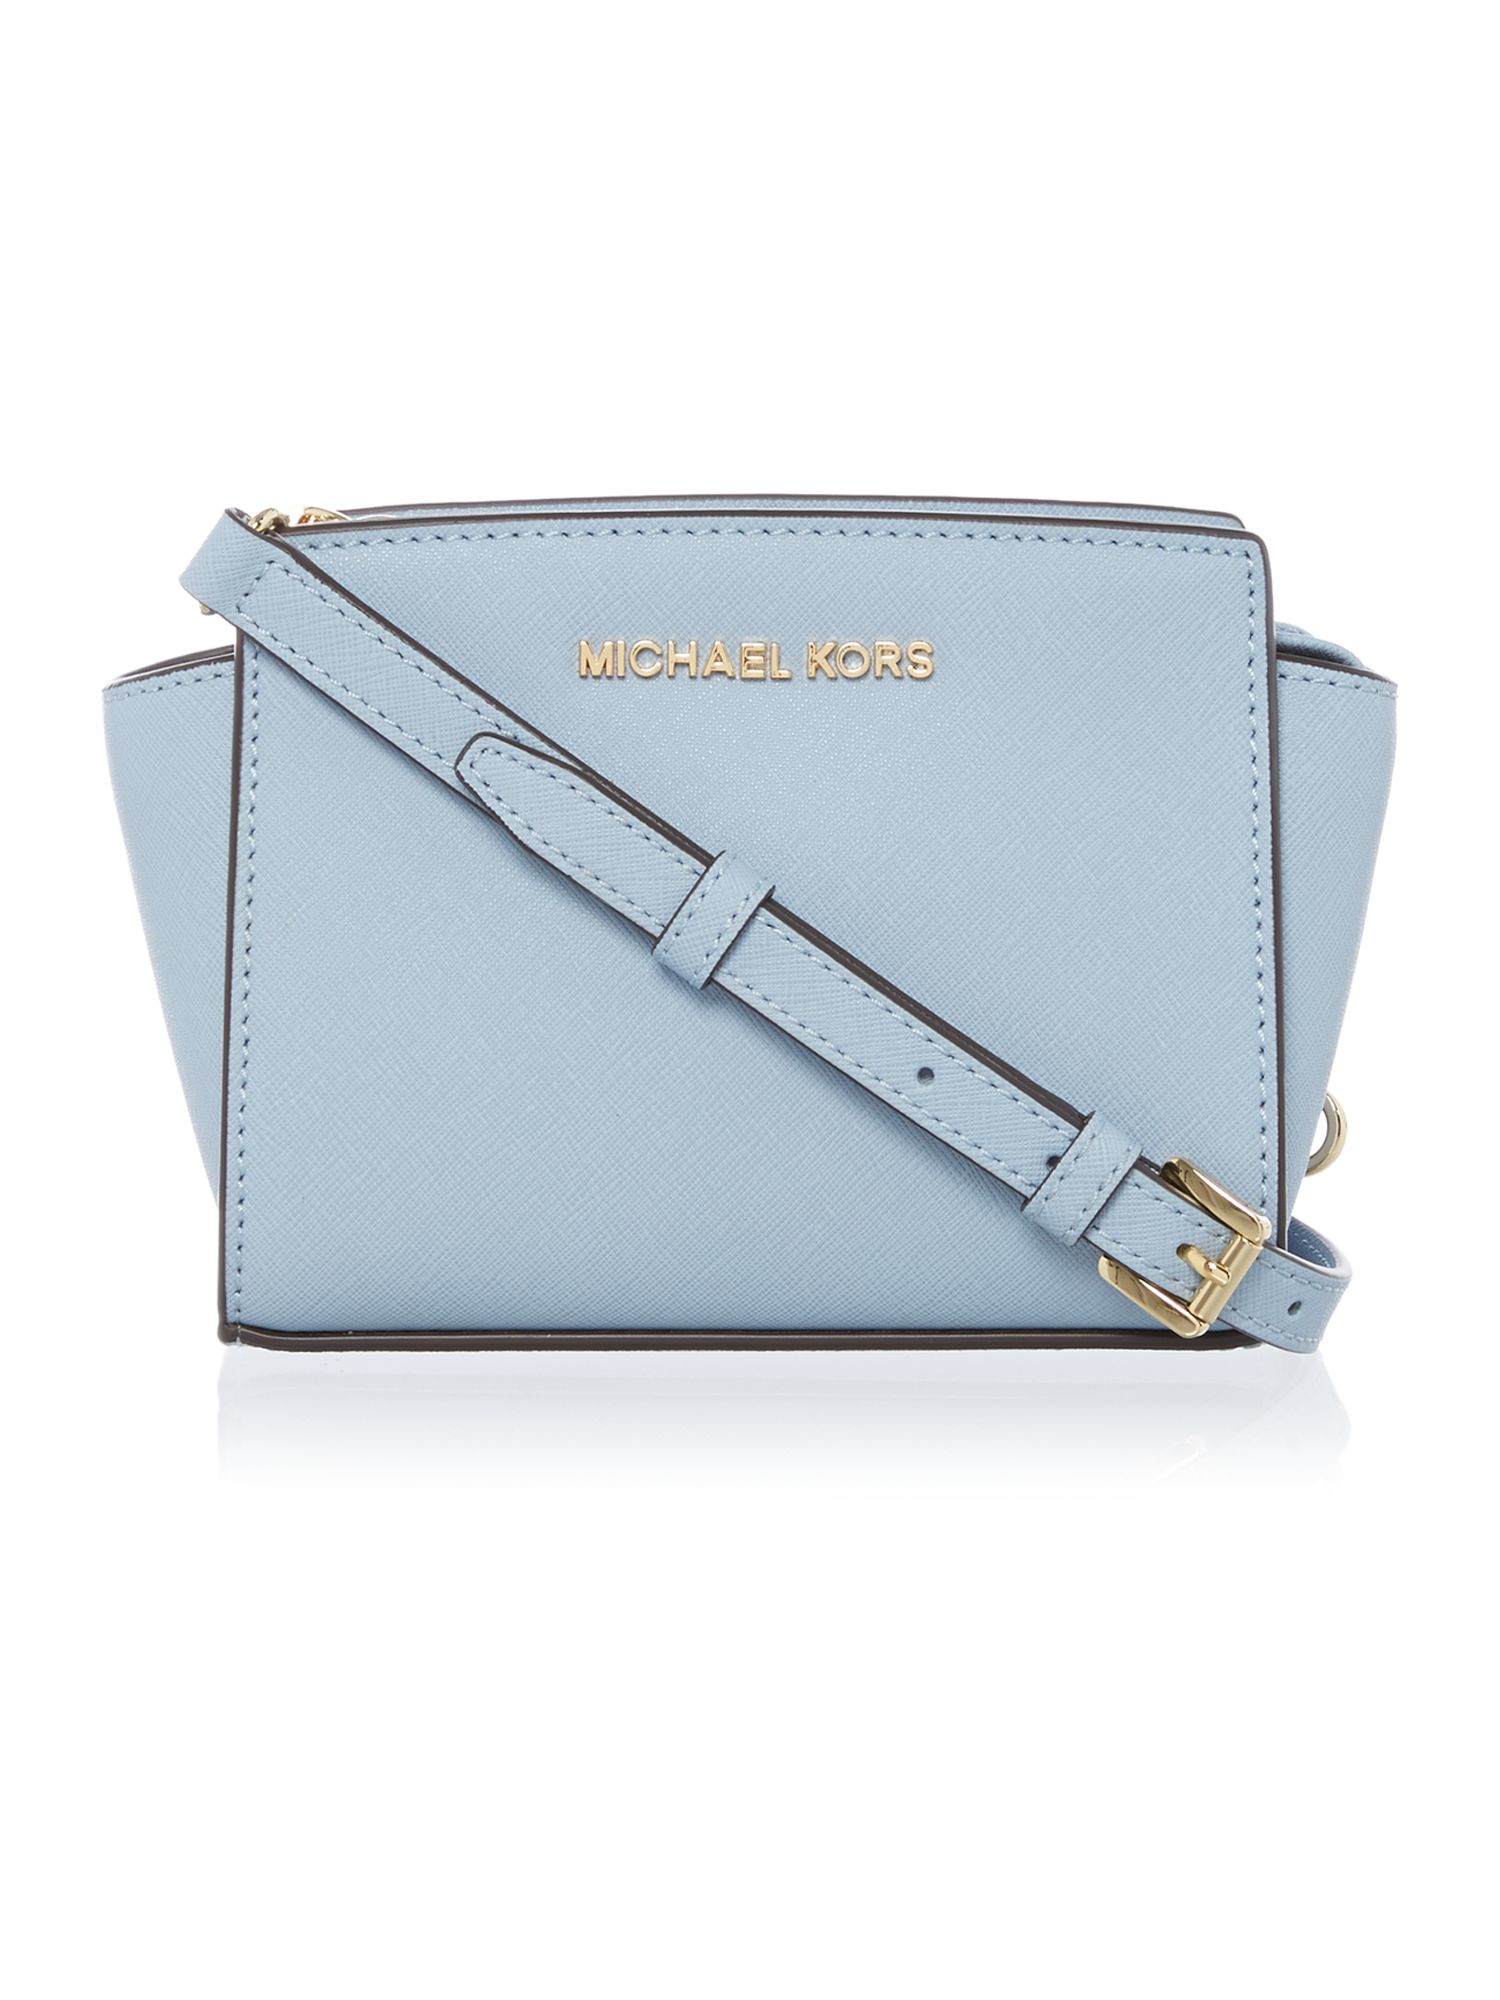 731c5ea4627 michael kors pale blue crossbody bags Gia Leather Large Totes ...